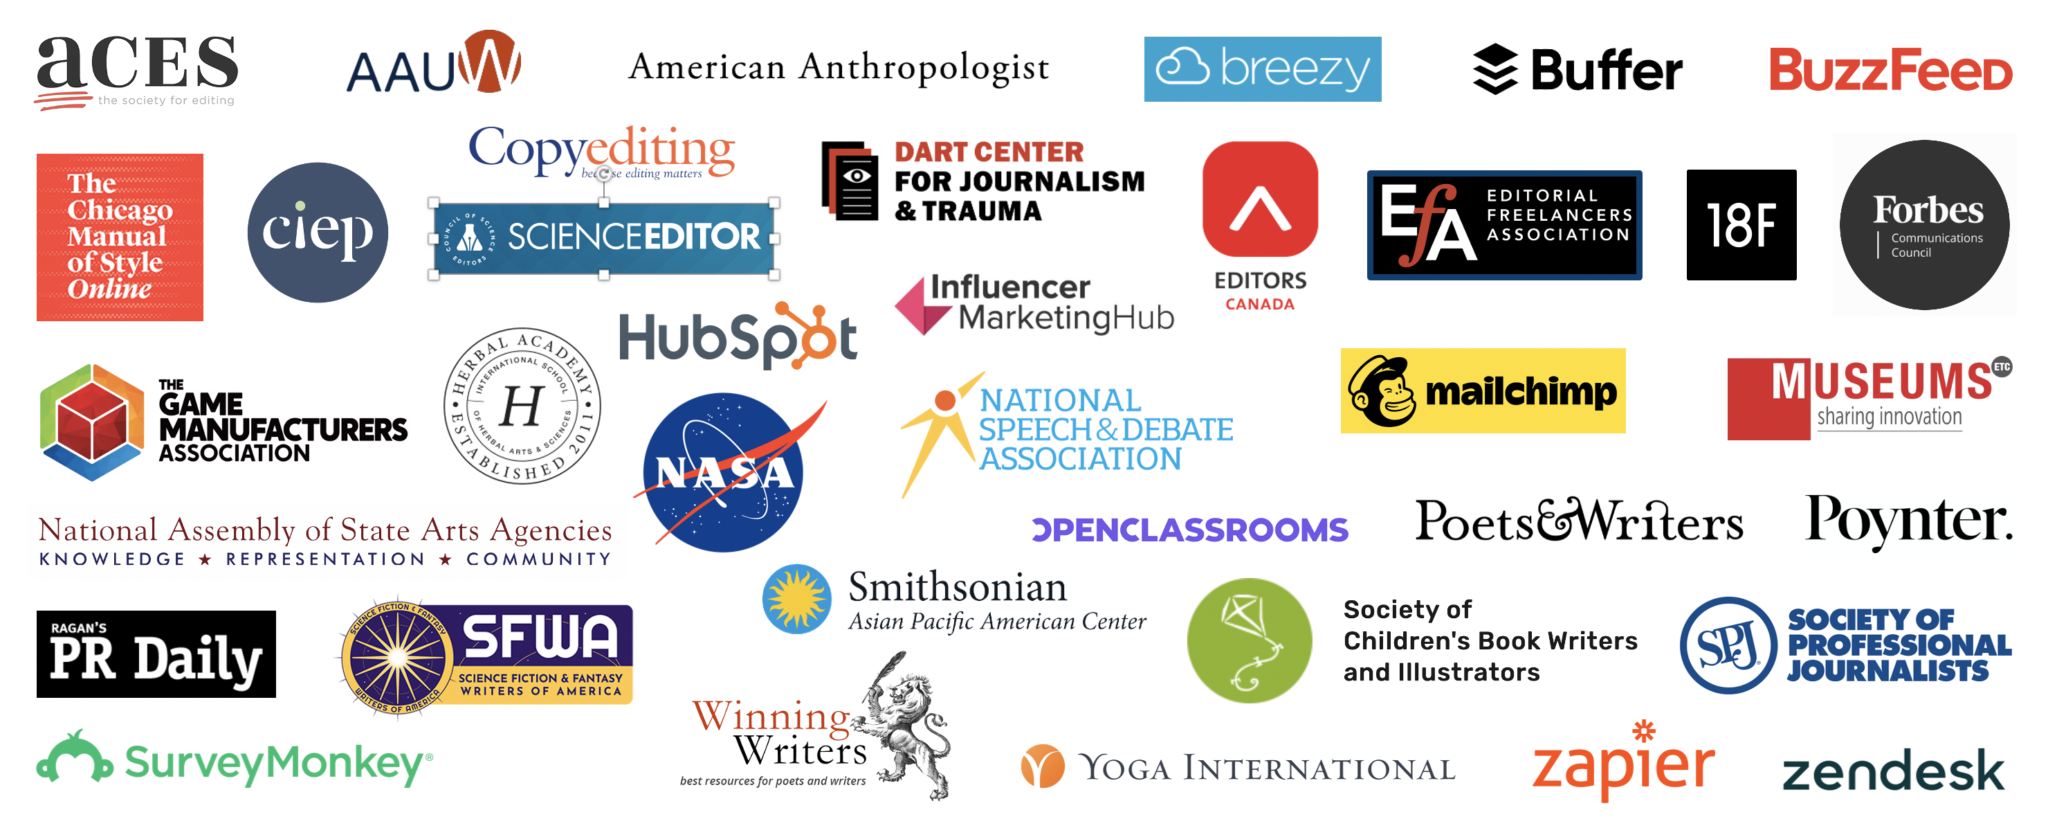 Logos for ACES: The Society for Editing, AAUW, American Anthropologist, Breezy, Buffer, BuzzFeed, The Chicago Manual of Style Online, CIEP, Council of Science Editors, Dart Center for Journalism & Trauma, Editors Canada, Editorial Freelancers Association, 18F, Forbes Communications Council, The Game Manufacturers Association, Herbal Academy, HubSpot, Influencer Marketing Hub, MailChimp, Museums Etc., National Assembly of State Arts Agencies, NASA, National Speech & Debate Association, Open Classrooms, Poets & Writers, Poynter, Ragan's PR Daily, Science Fiction & Fantasy Writers of America, Smithsonian Asian Pacific American Center, Society of Children's Book Writers and Illustrators, Society of Professional Journalists, SurveyMonkey, Winning Writers, Yoga International, Zapier, Zendesk